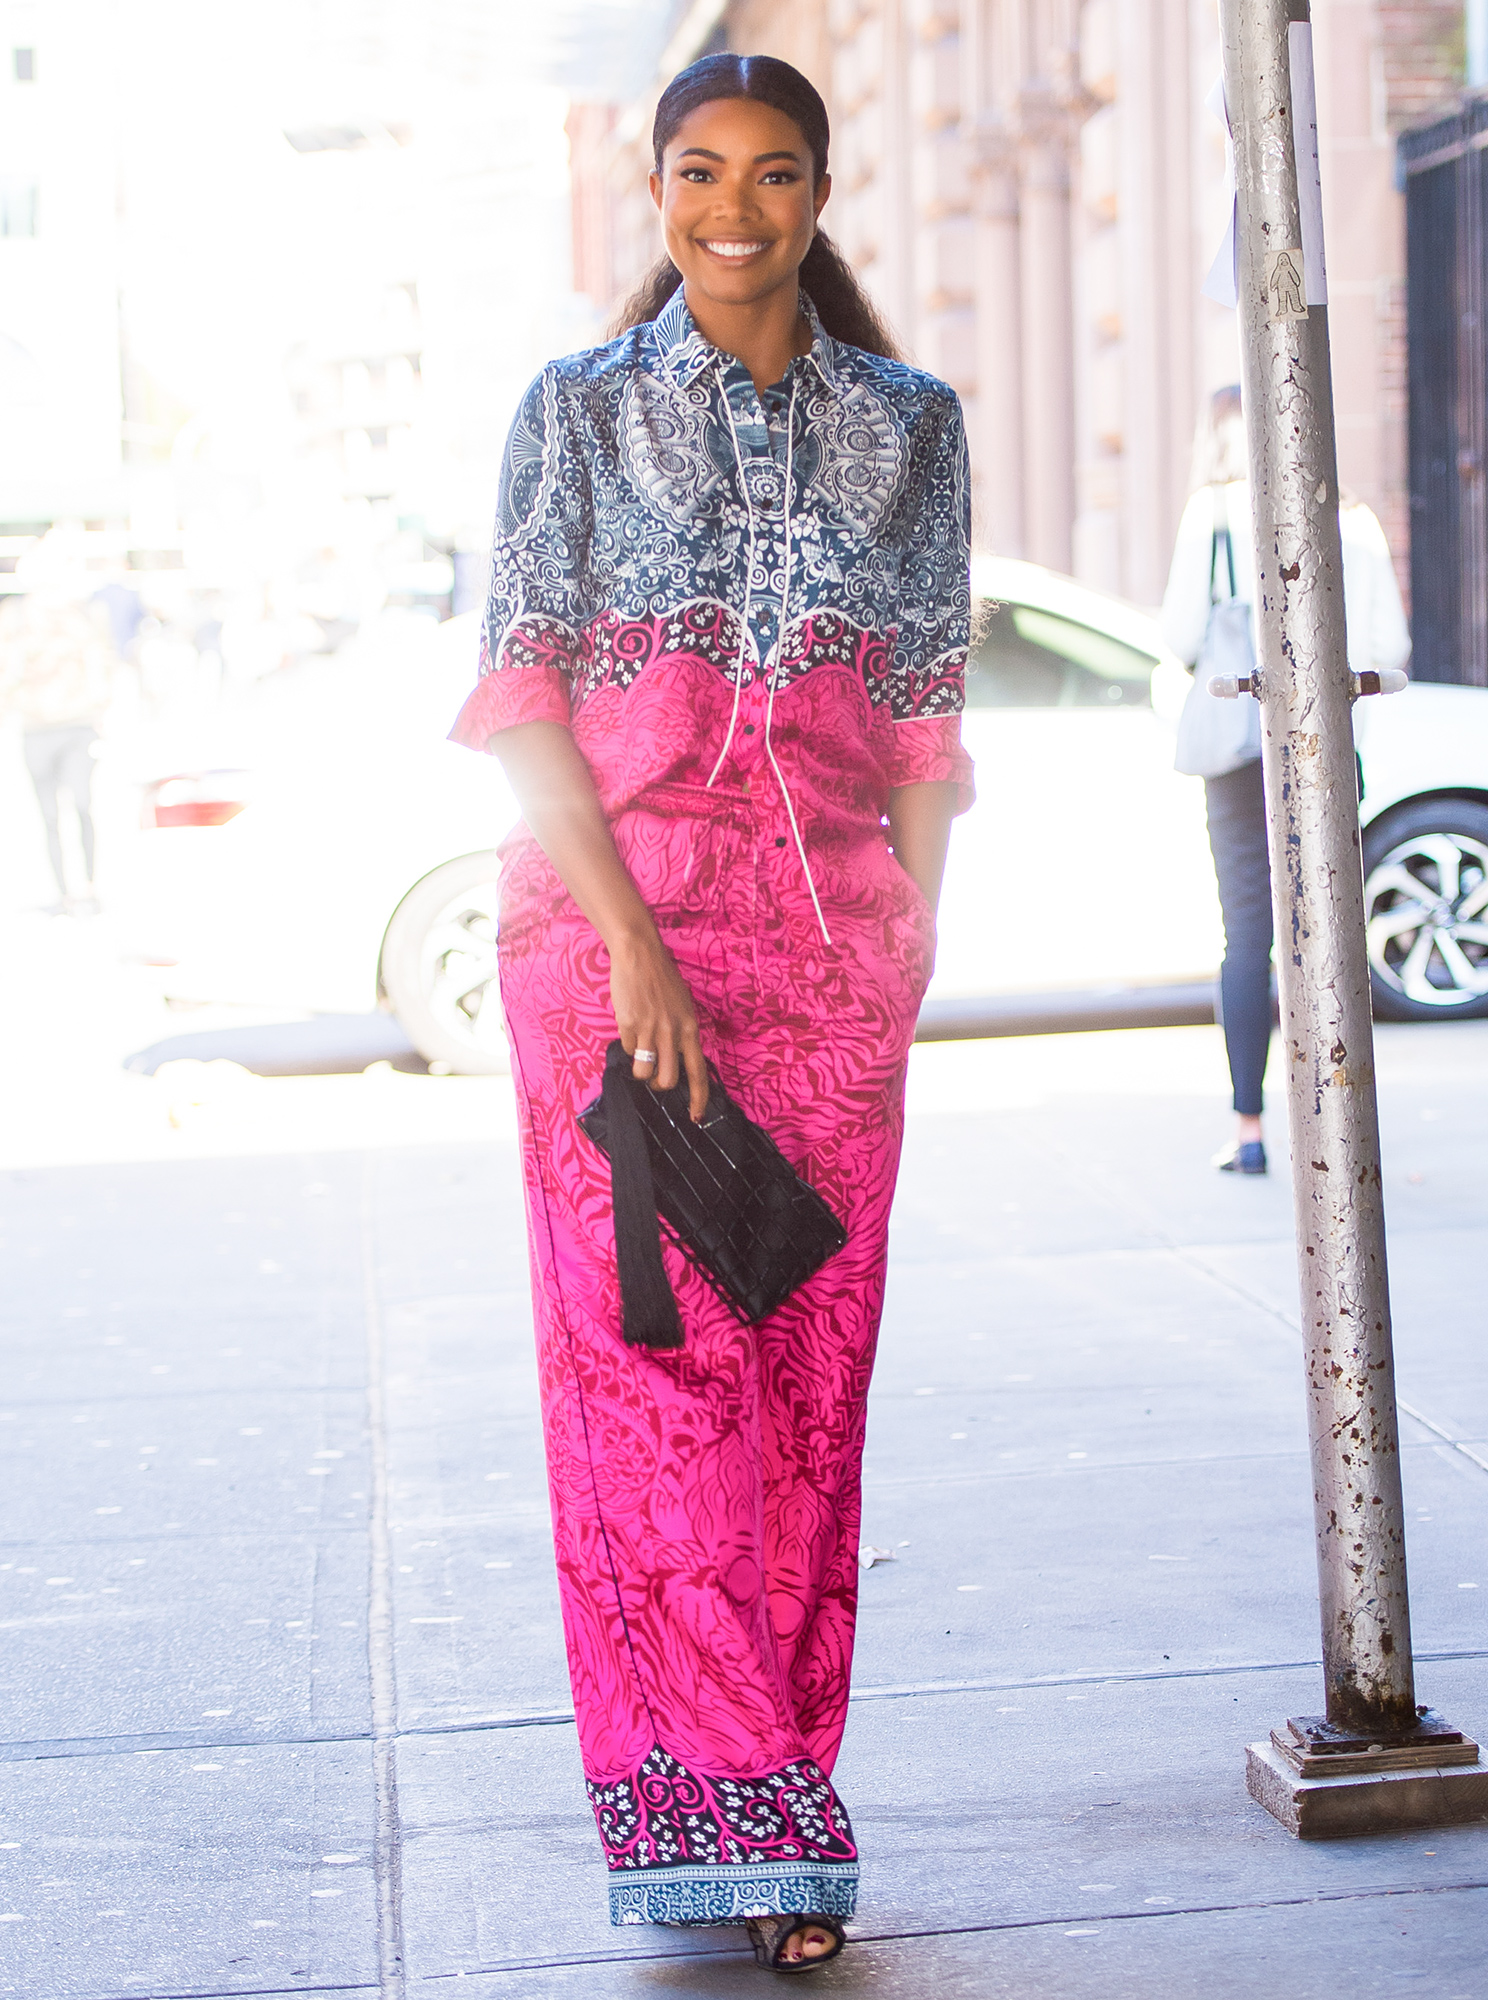 EXCLUSIVE: Gabrielle Union is seen wearing a hot pink and navy blue patterned one piece in New York City